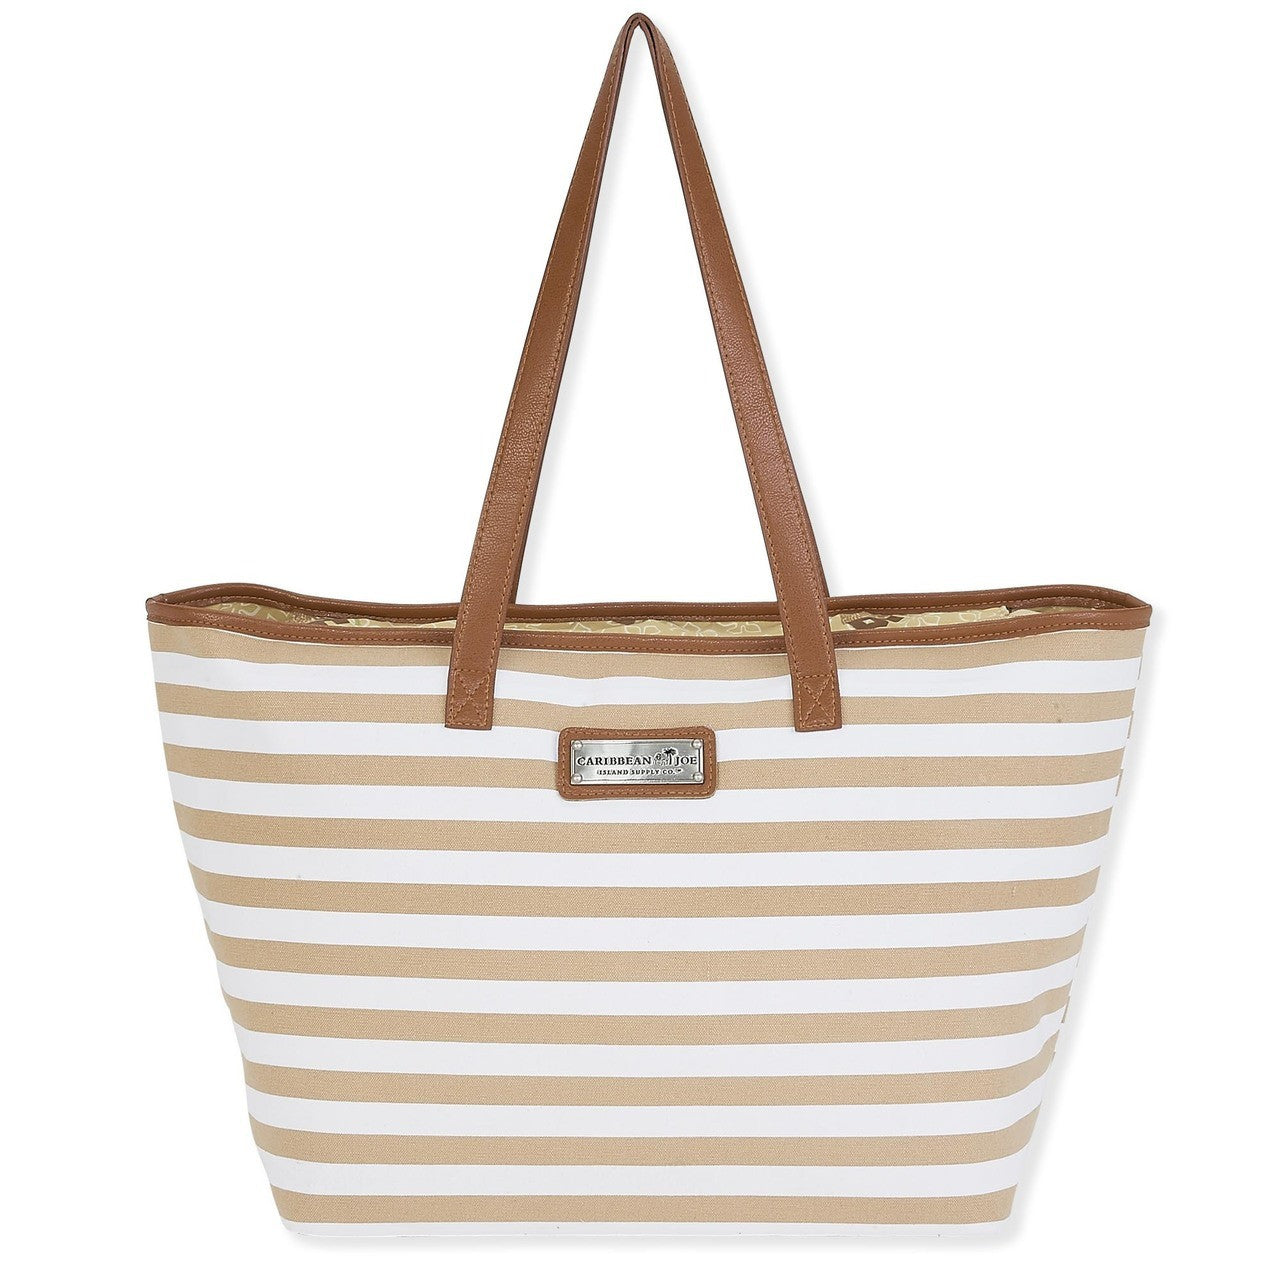 Faux Leather strapped tote bag  Zip top  Canvas material  natural and white stripes